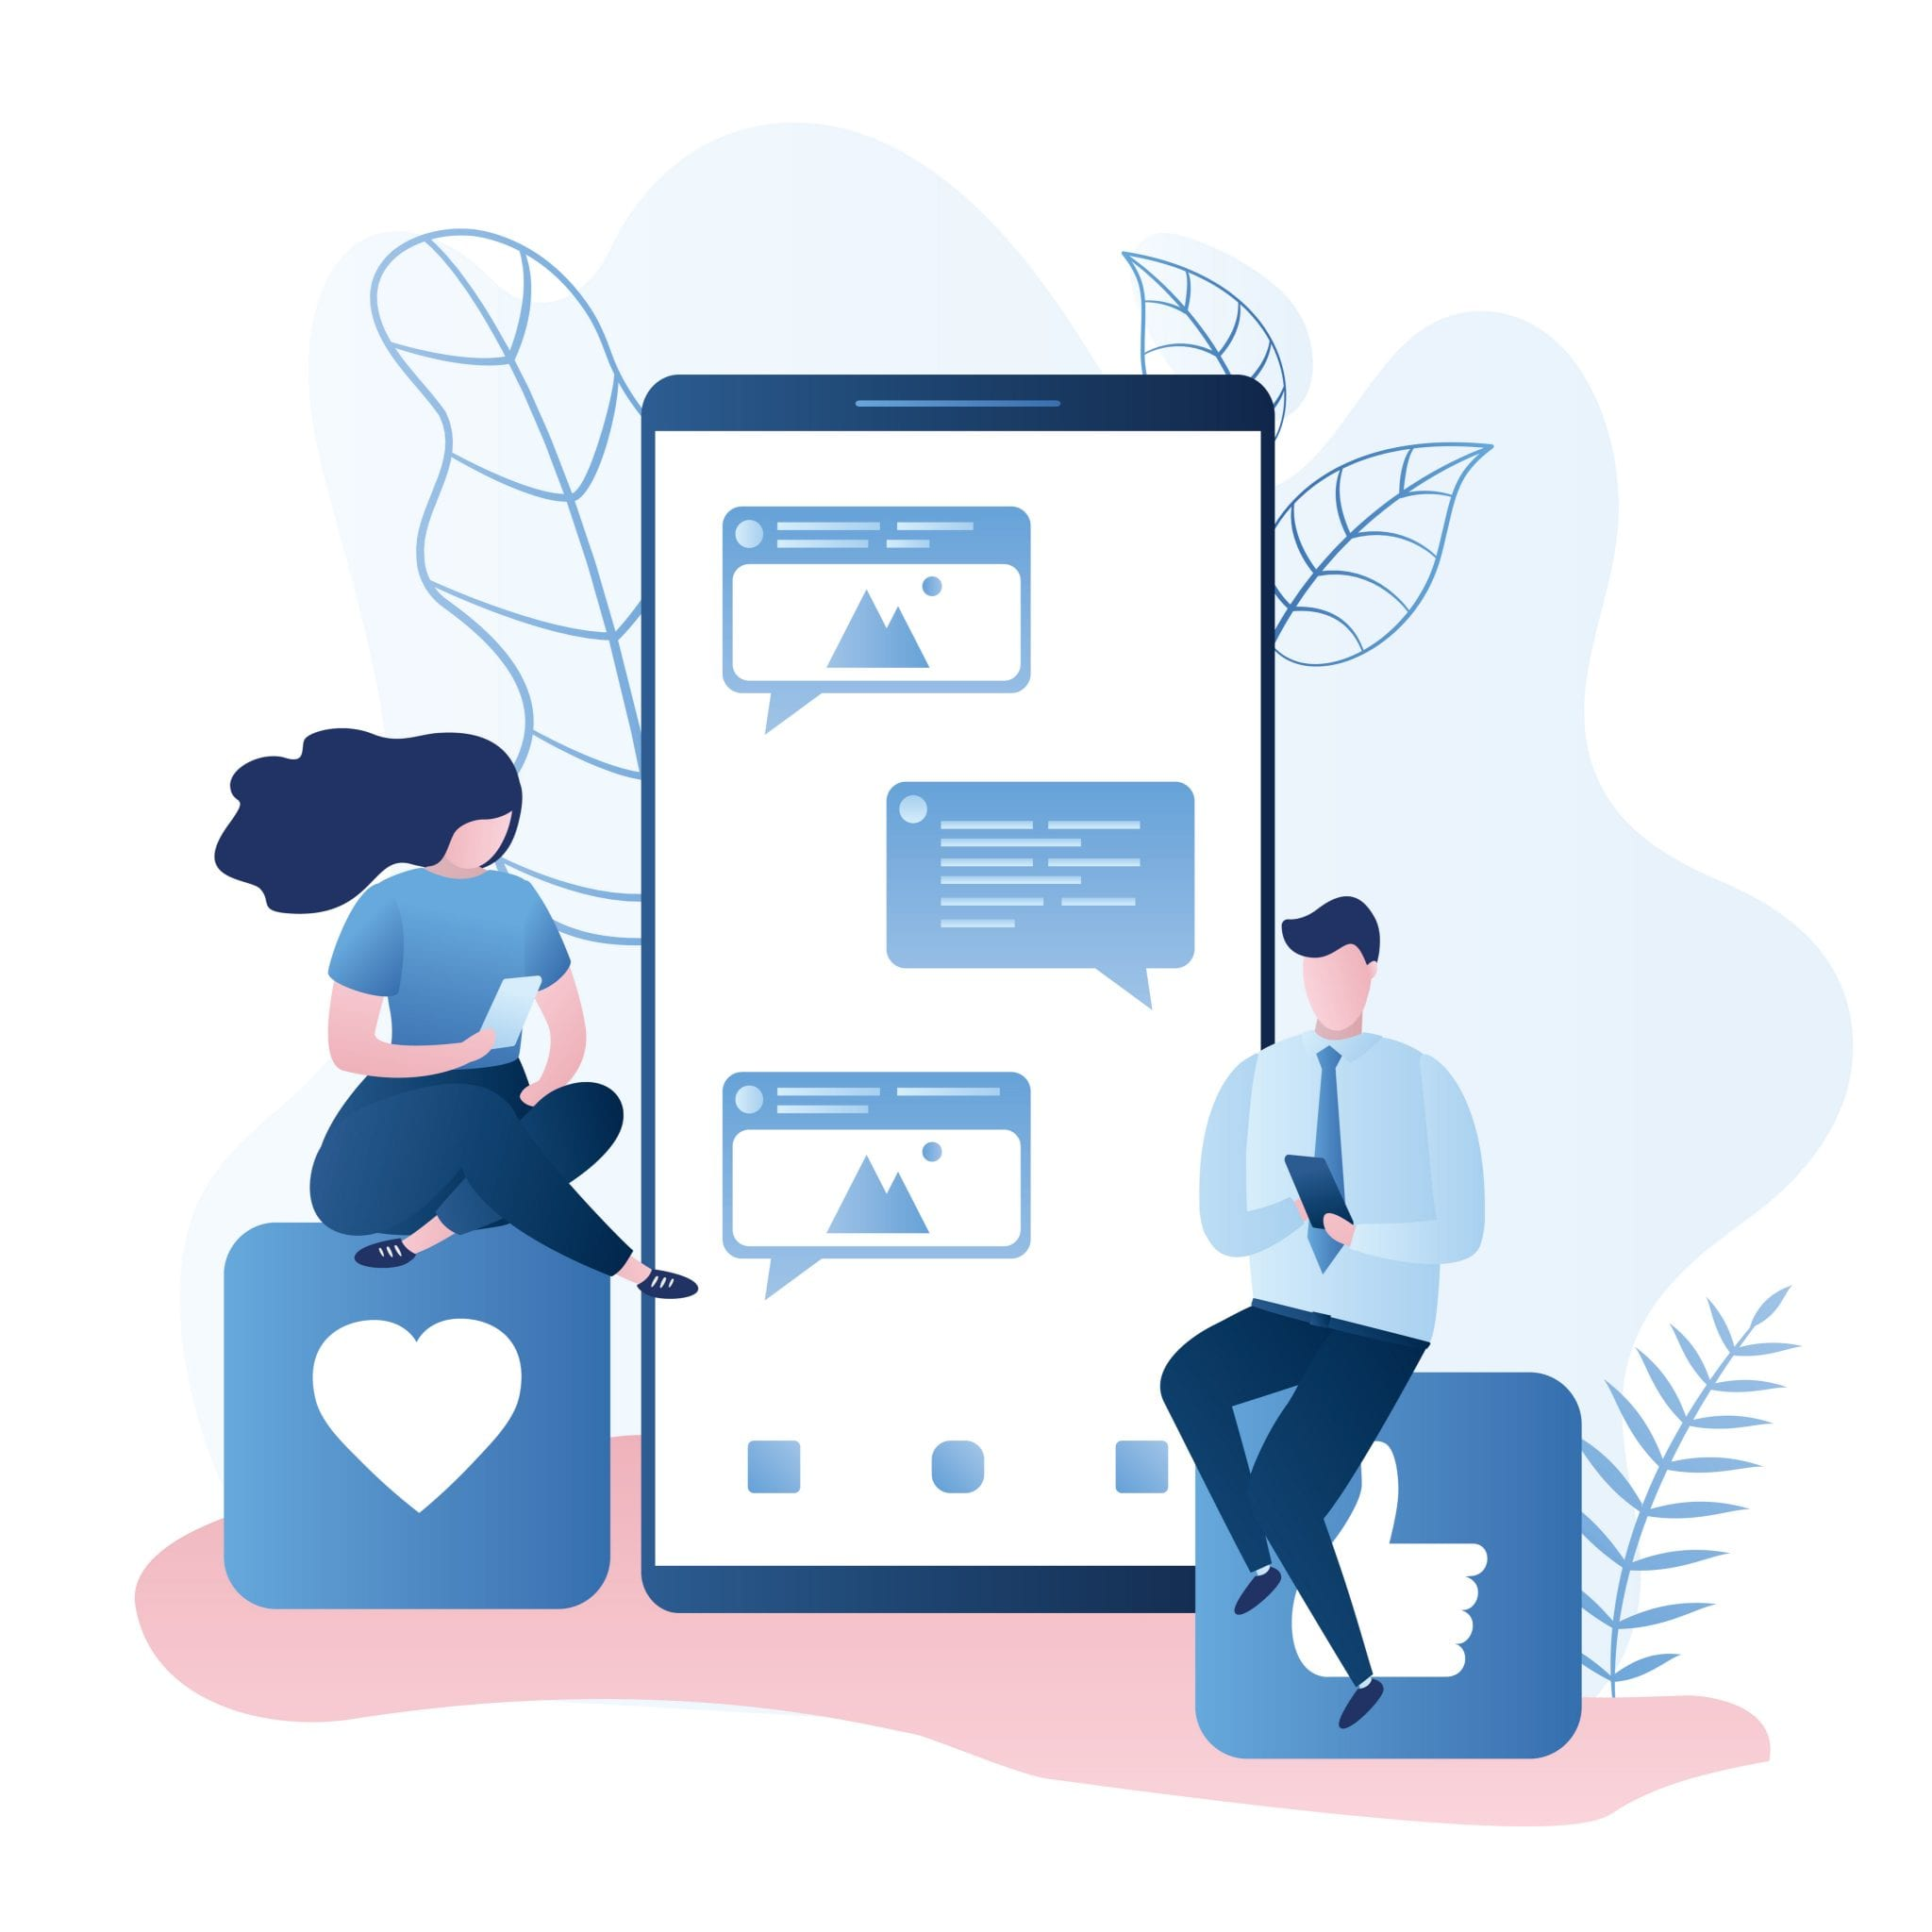 Big Modern Smartphone With Speech Bubbles and Two Cute Male and Female Characters Sitting on Signs and Chatting, trendy Style Vector Illustration.